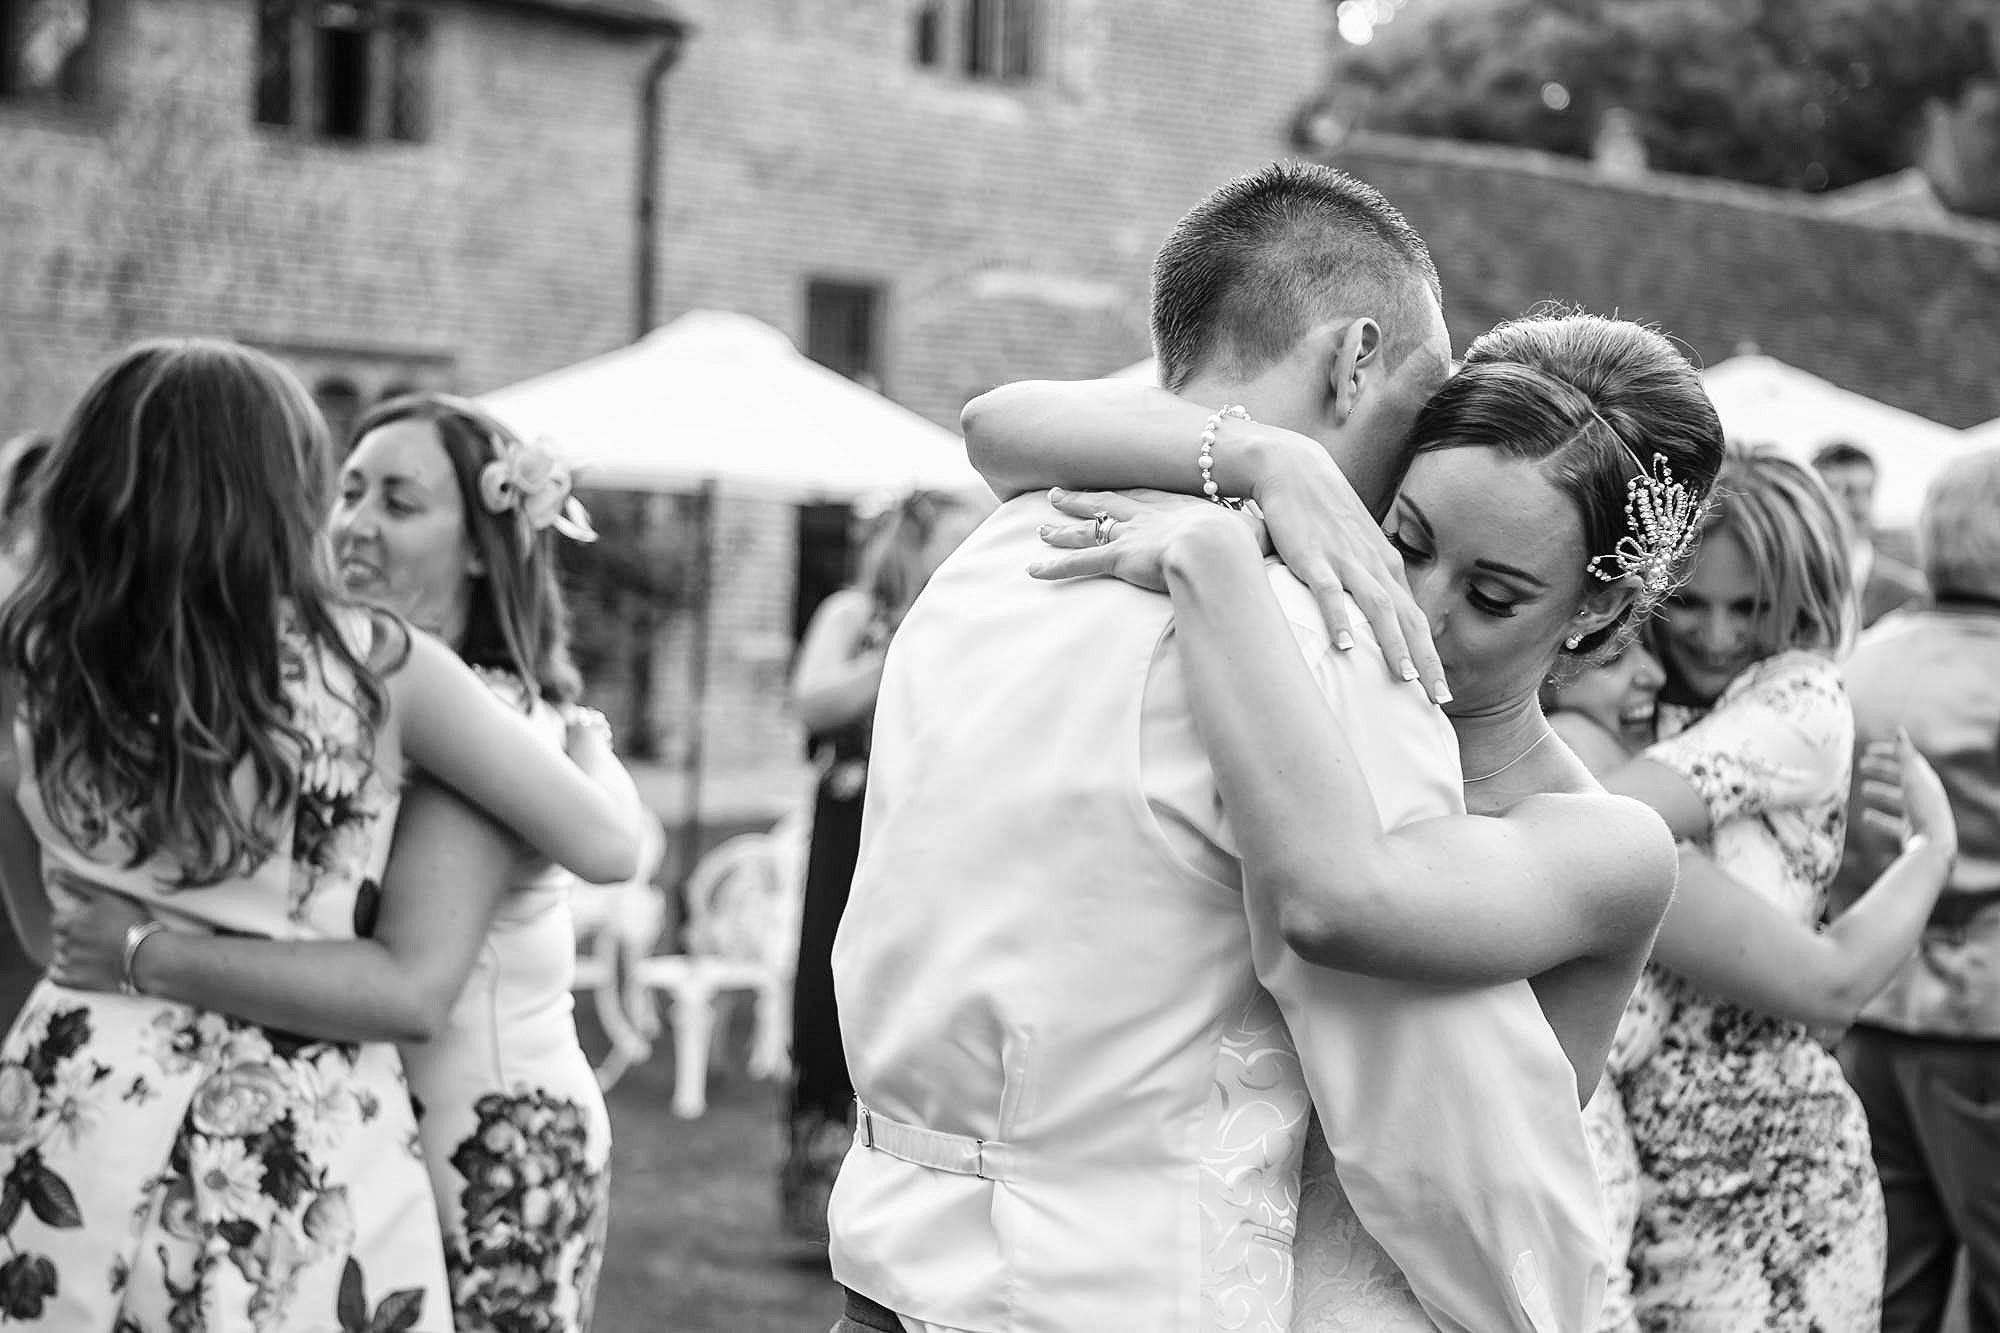 Leez Priory Weddings dances